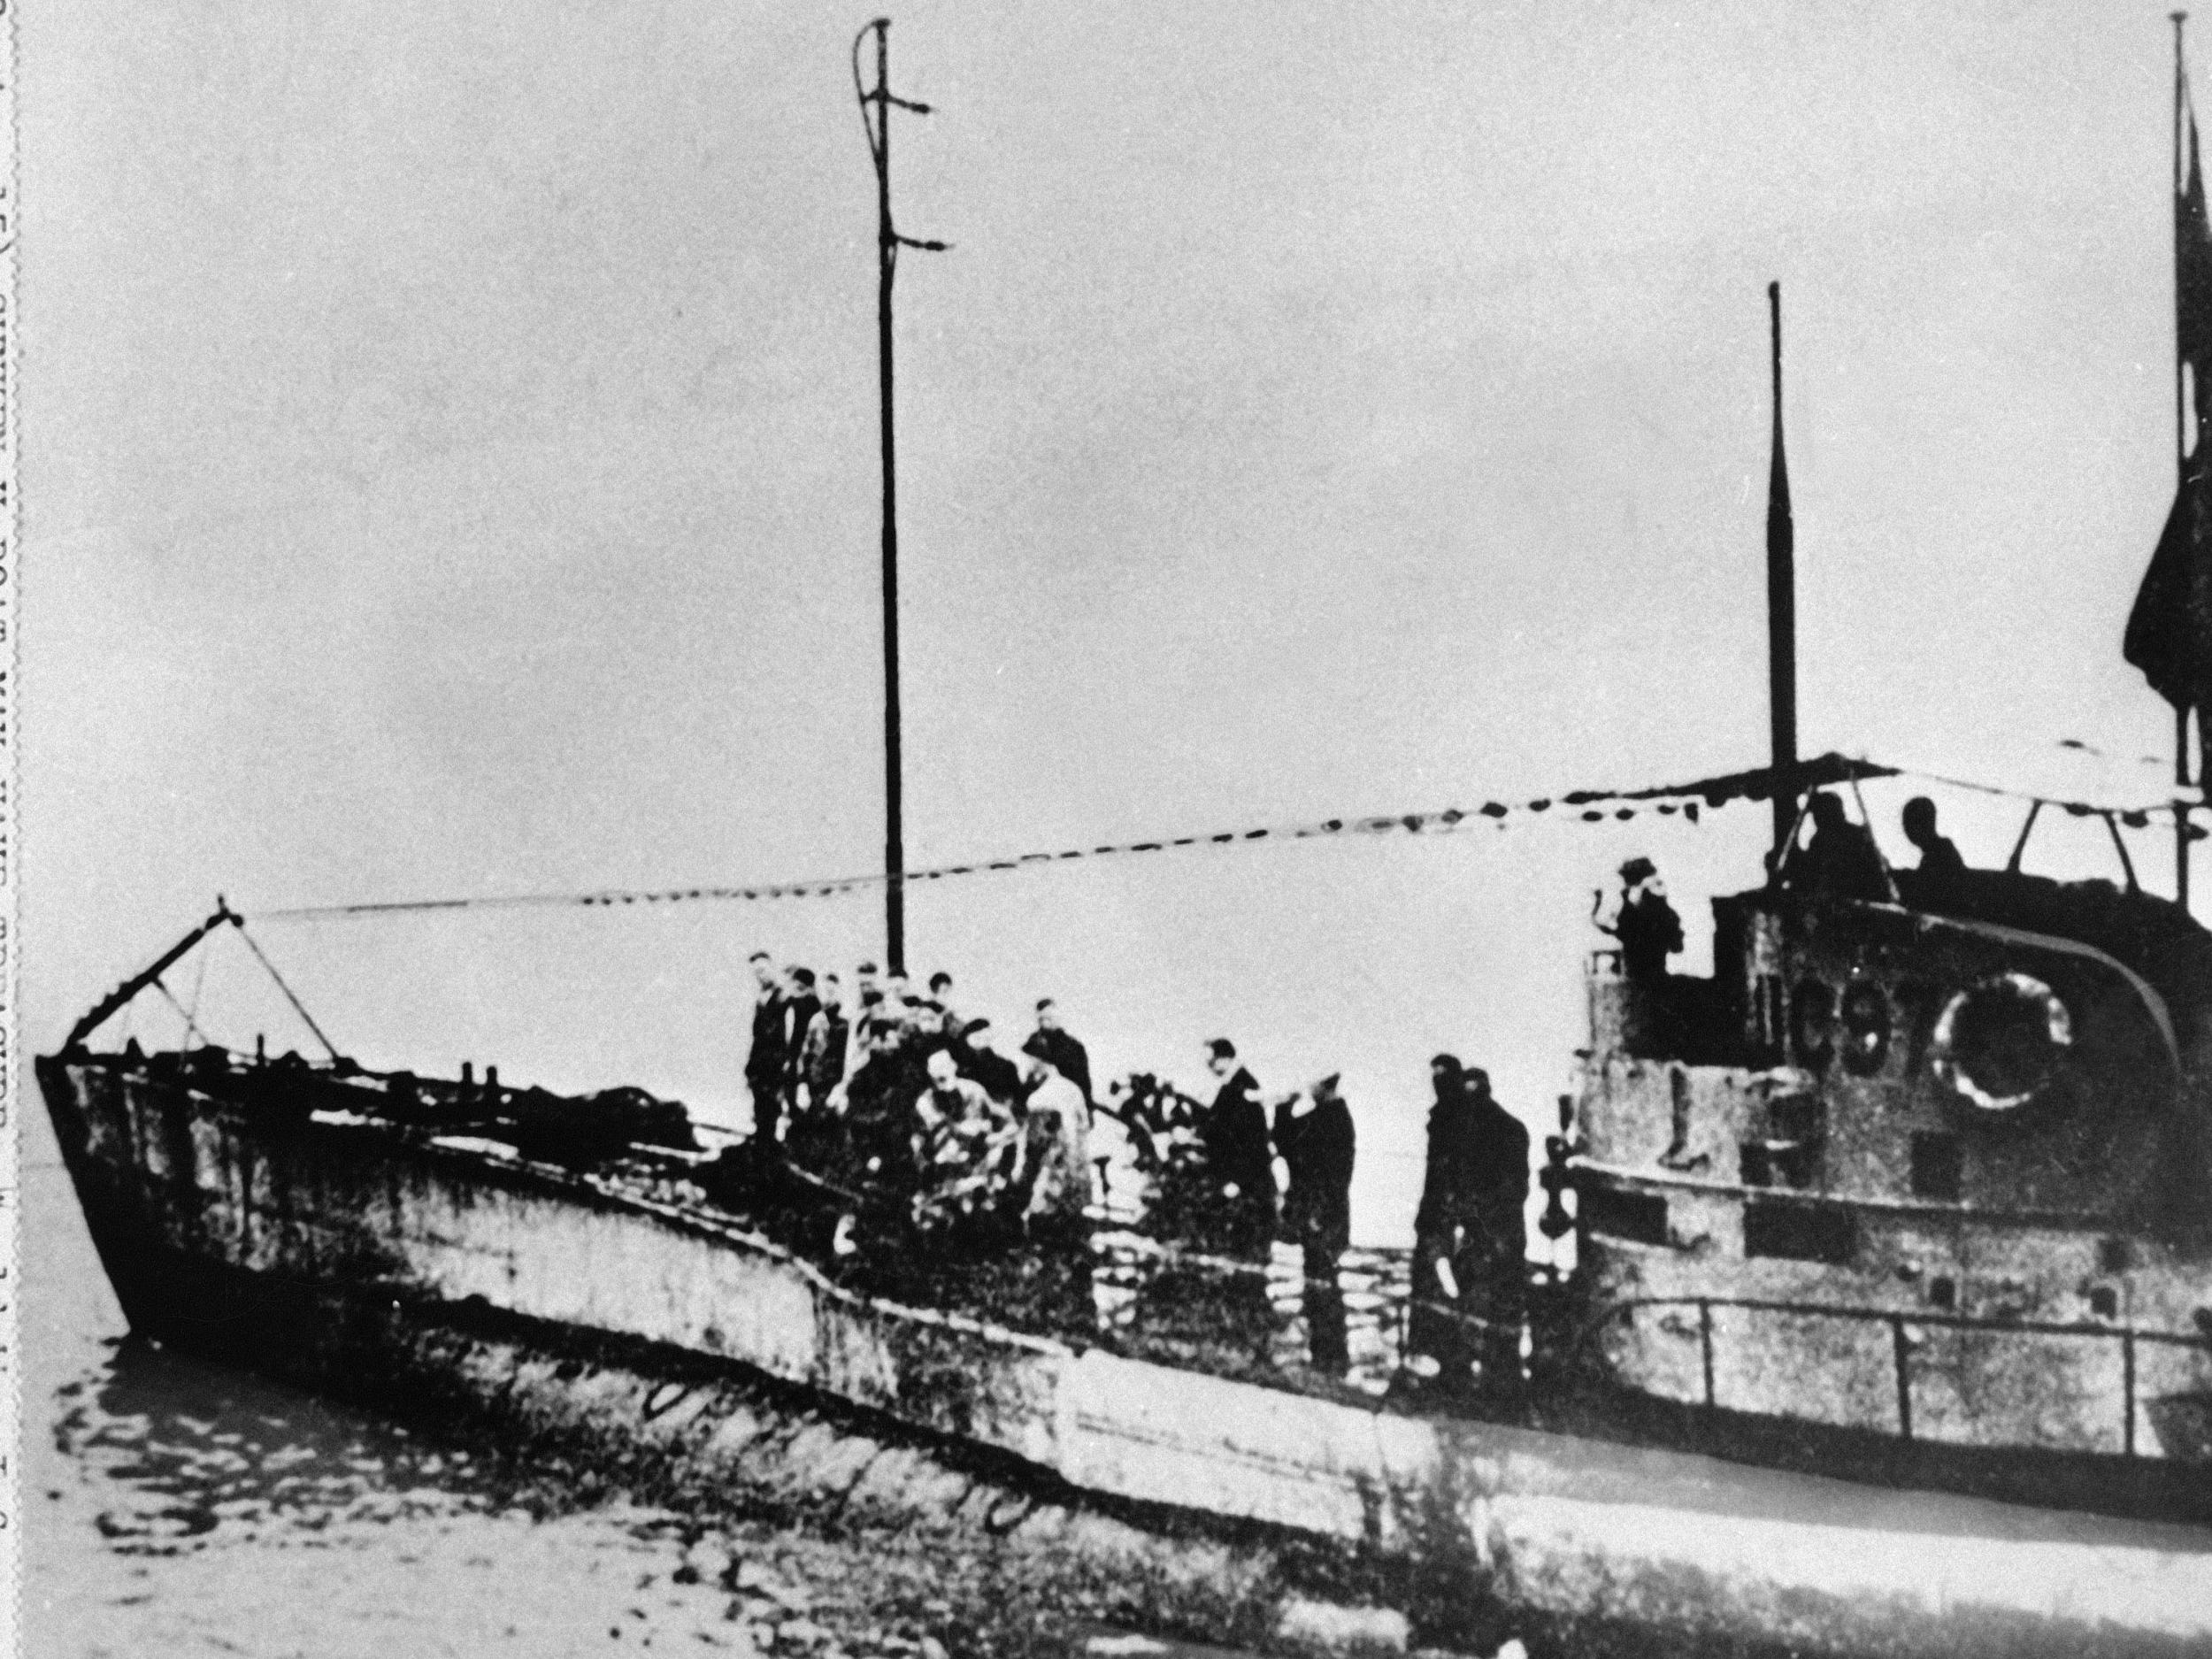 German First World War submarine with 23 bodies inside discovered off Belgian coast